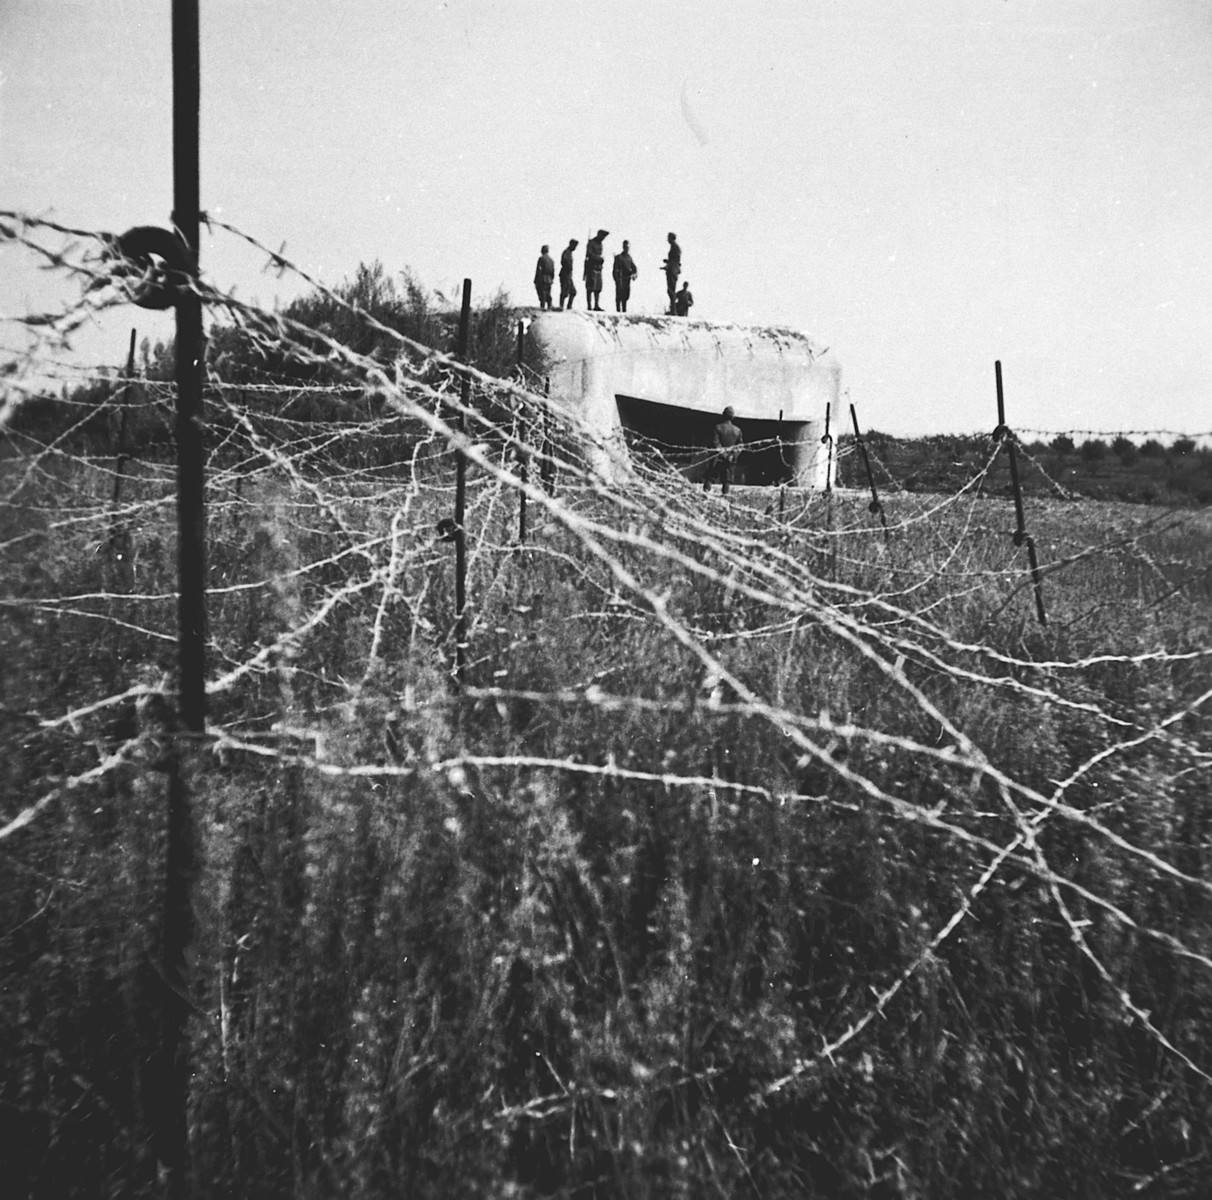 Members of a Hungarian forced labor battalion stand on top of a bunker behind a barbed wire fence in Oradea, where they are accompanying the Hungarian army's advance into Transylvania.